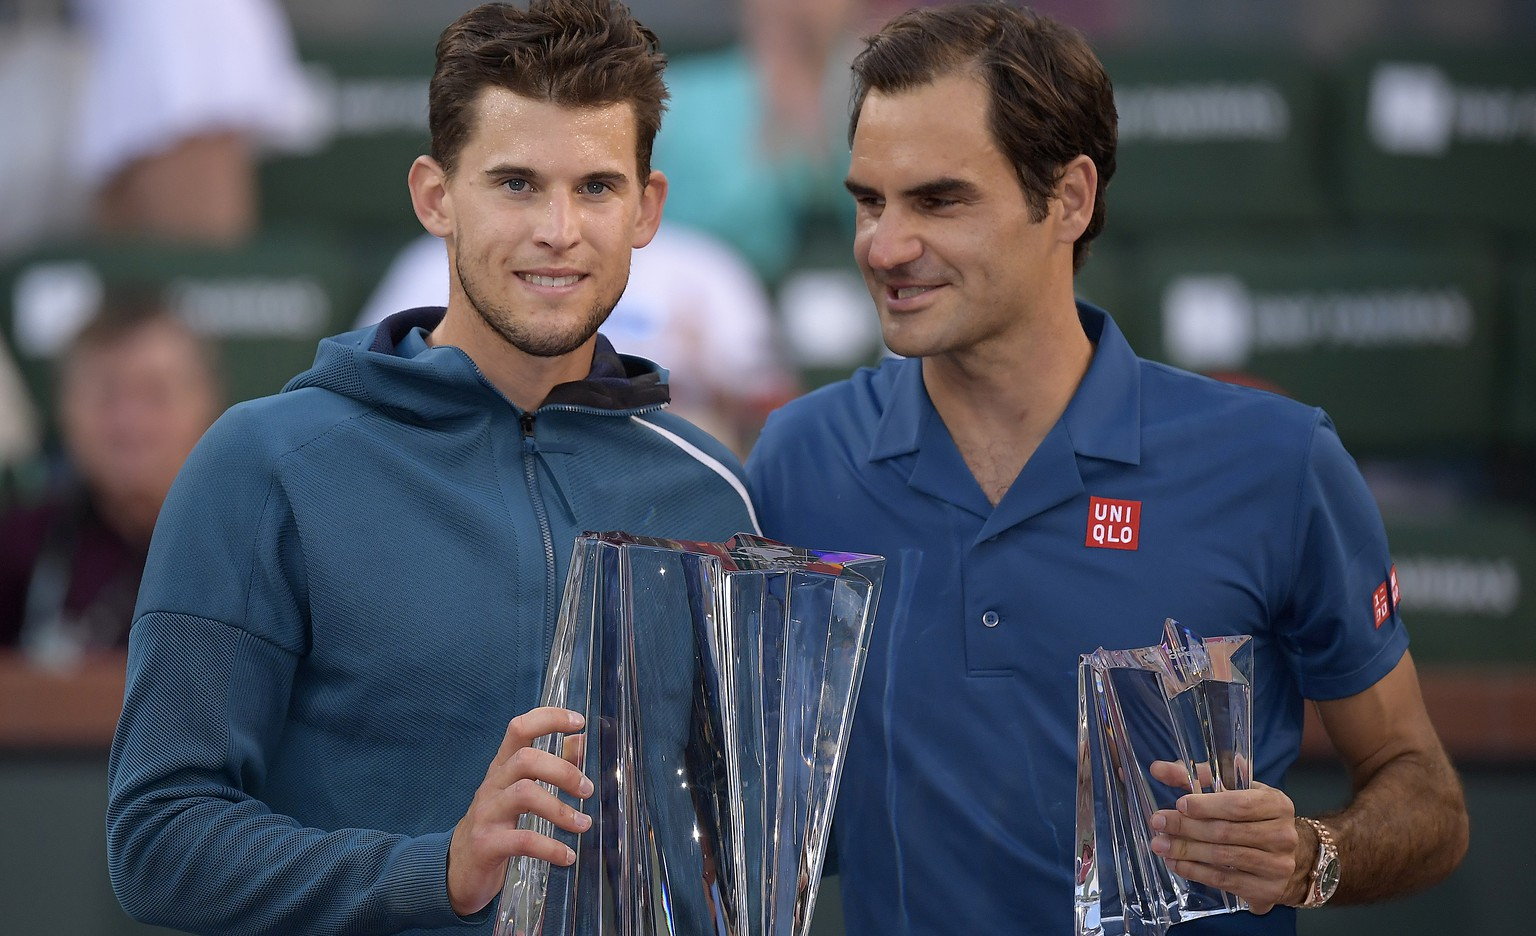 Dominic Thiem, of Austria, left, and Roger Federer, of Switzerland, pose with trophies after Thiem defeated Federer in the men's final at the BNP Paribas Open tennis tournament Sunday, March 17, 2019, in Indian Wells, Calif. Thiem won 3-6, 6-3, 7-5. (AP Photo/Mark J. Terrill)